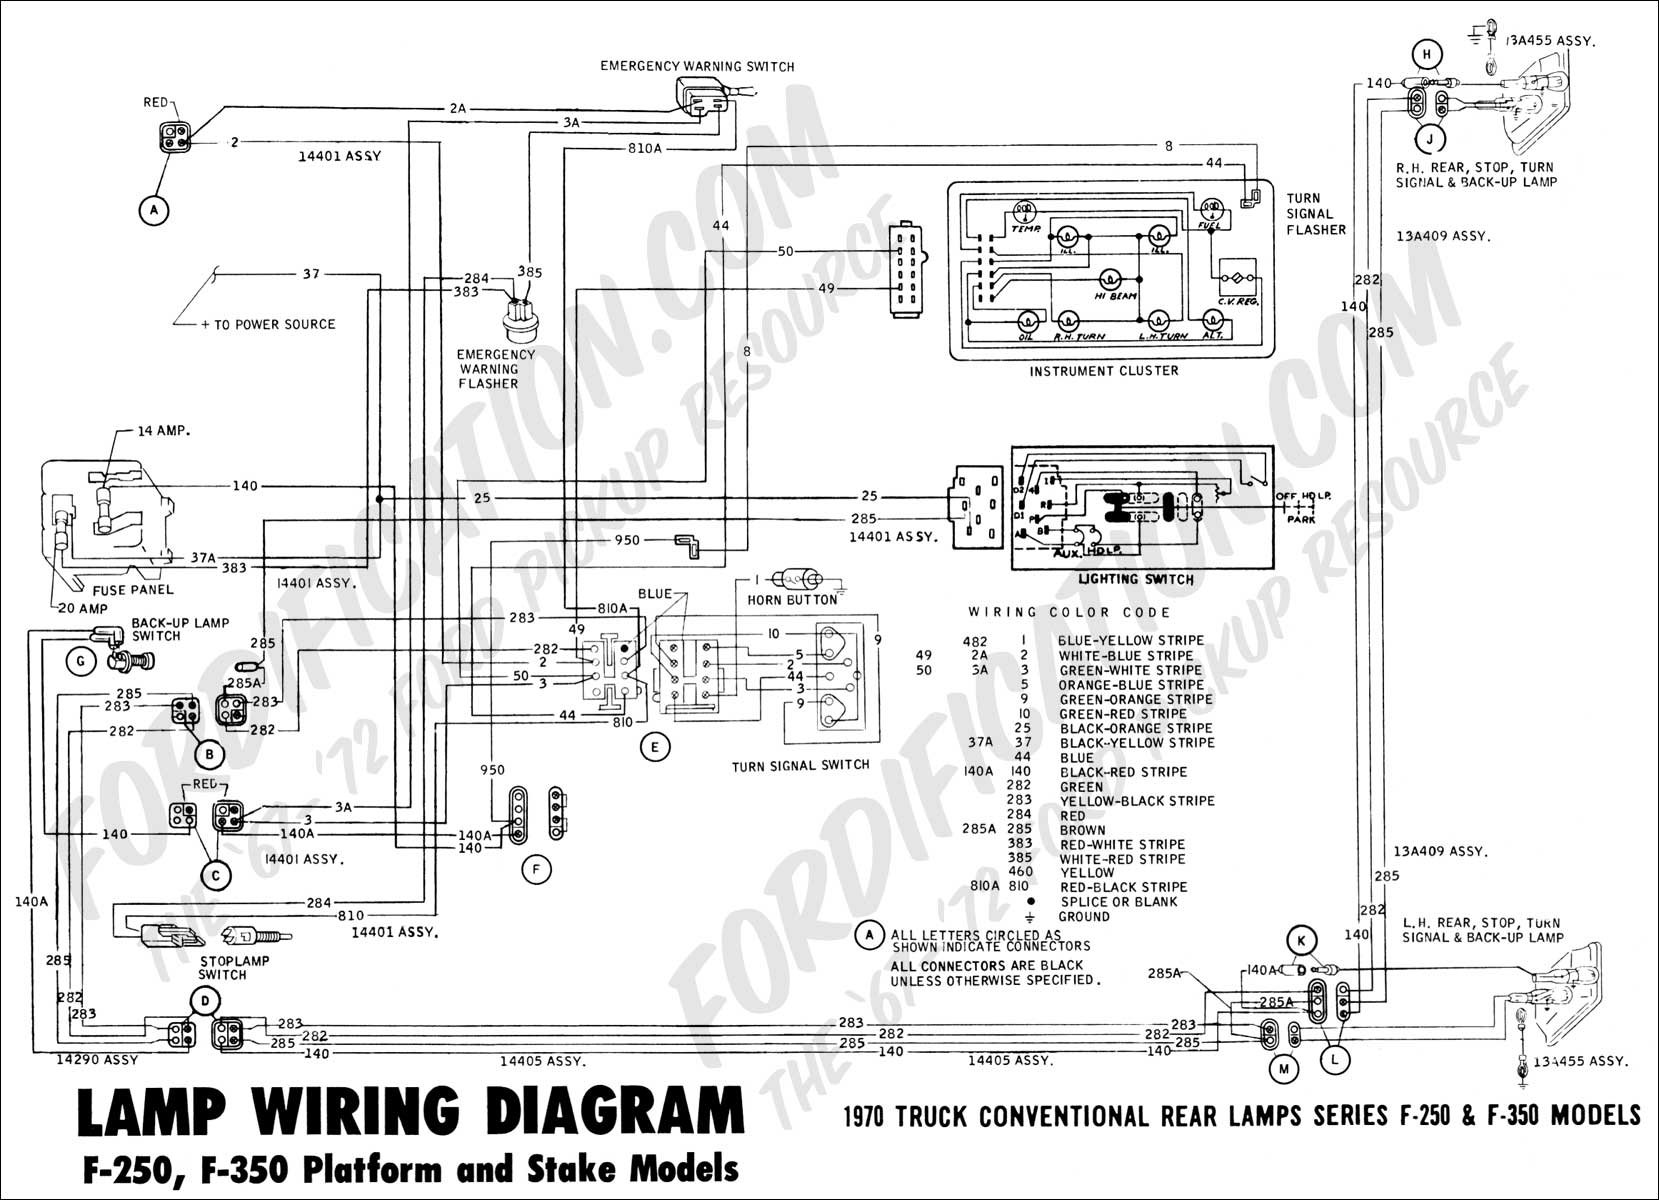 Wiring Diagram For Lamp : Ford truck technical drawings and schematics section h